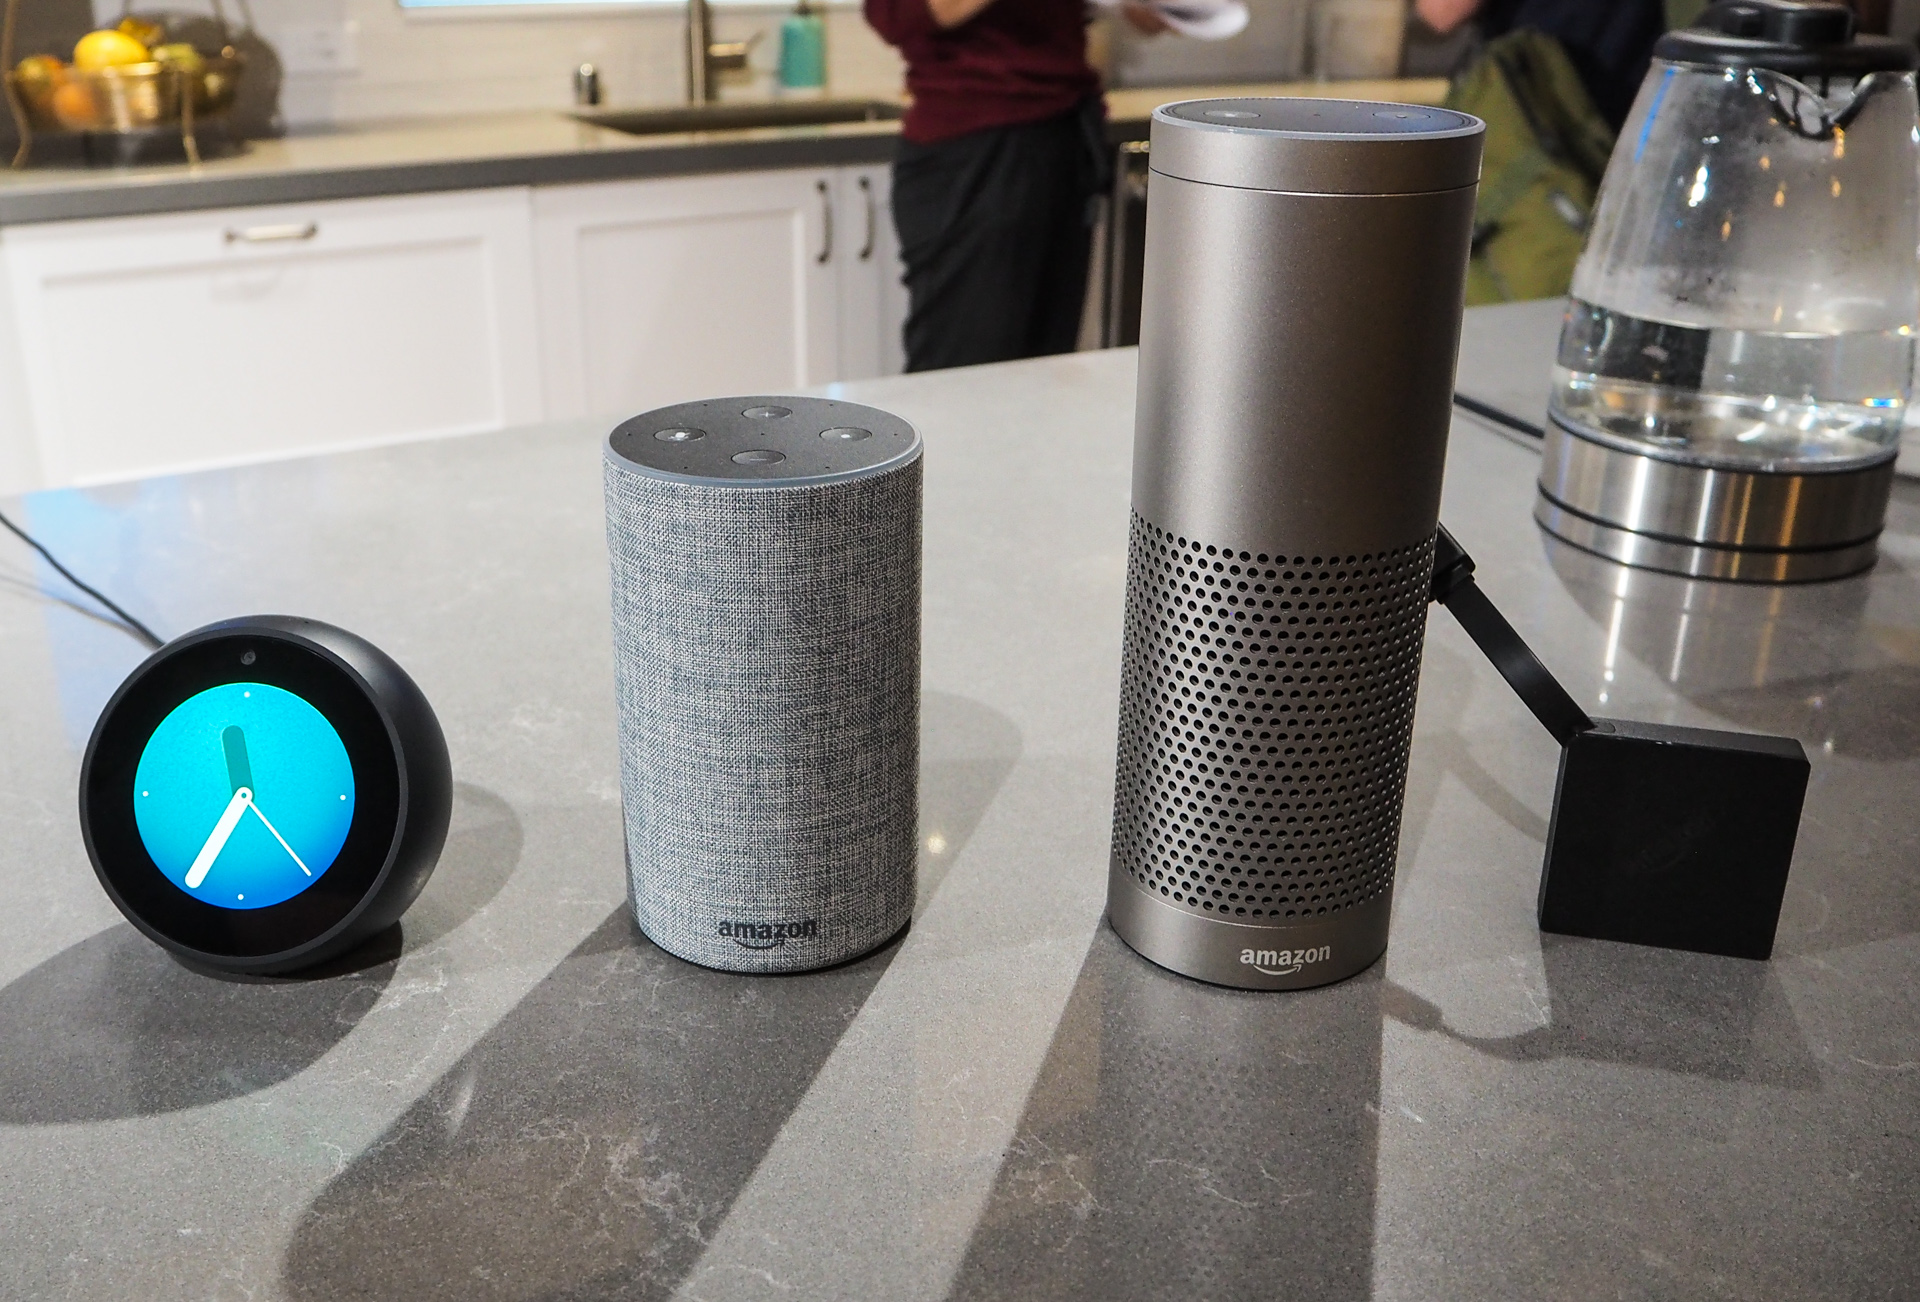 Amazon is bringing Alexa and Echo to France this month		 		 	Brian Heater         @	       	10 hours